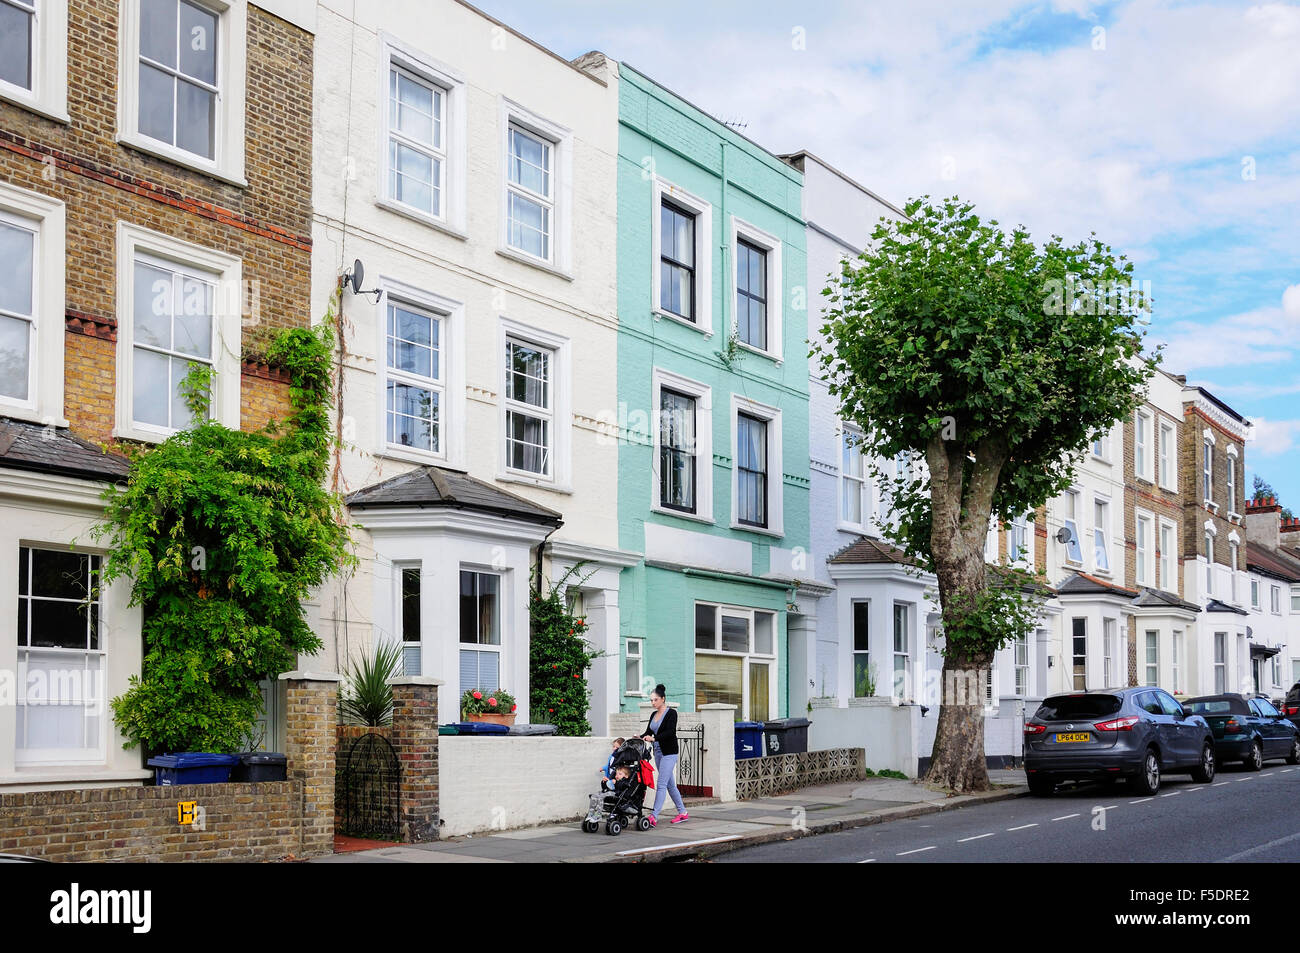 Terraced houses, North End Way, Golders Green, London Borough of Barnet, London, England, United Kingdom - Stock Image